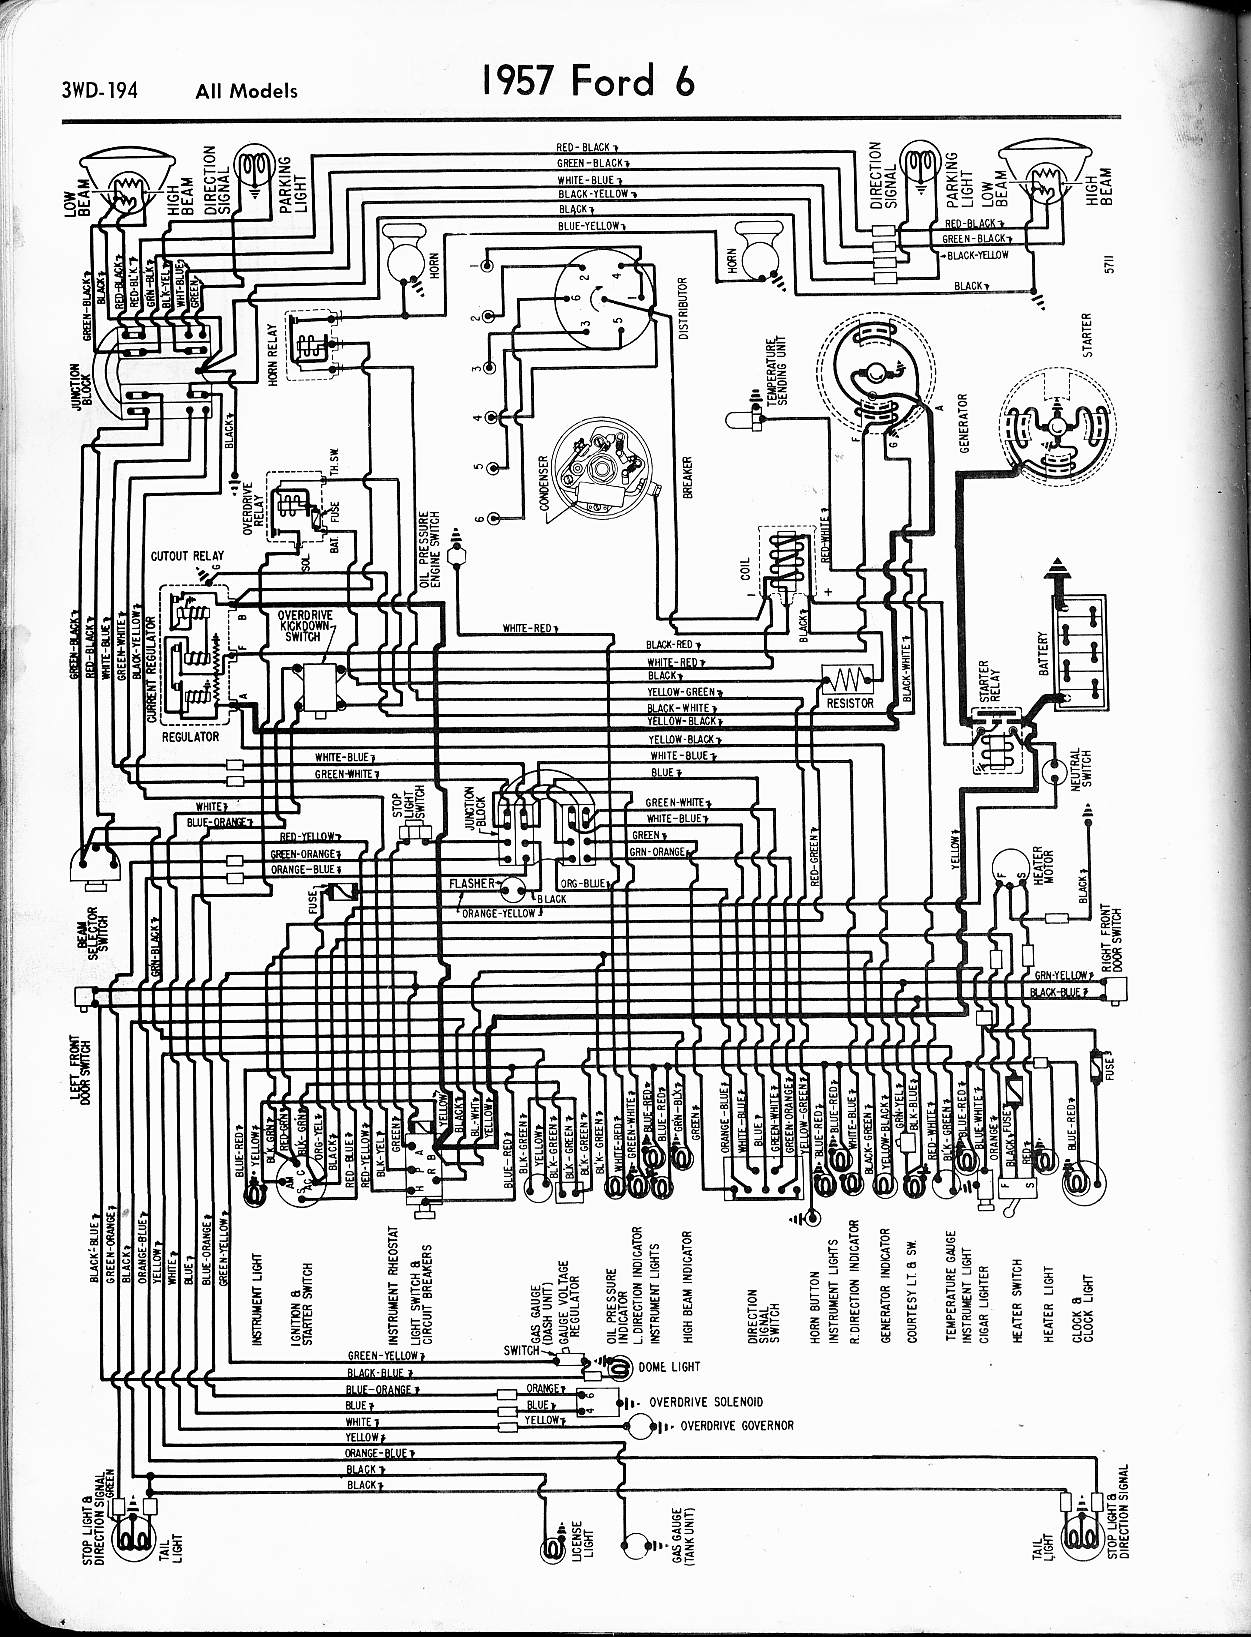 1955 ford generator wiring diagram - data wiring diagram rob-space-a -  rob-space-a.vivarelliauto.it  vivarelliauto.it